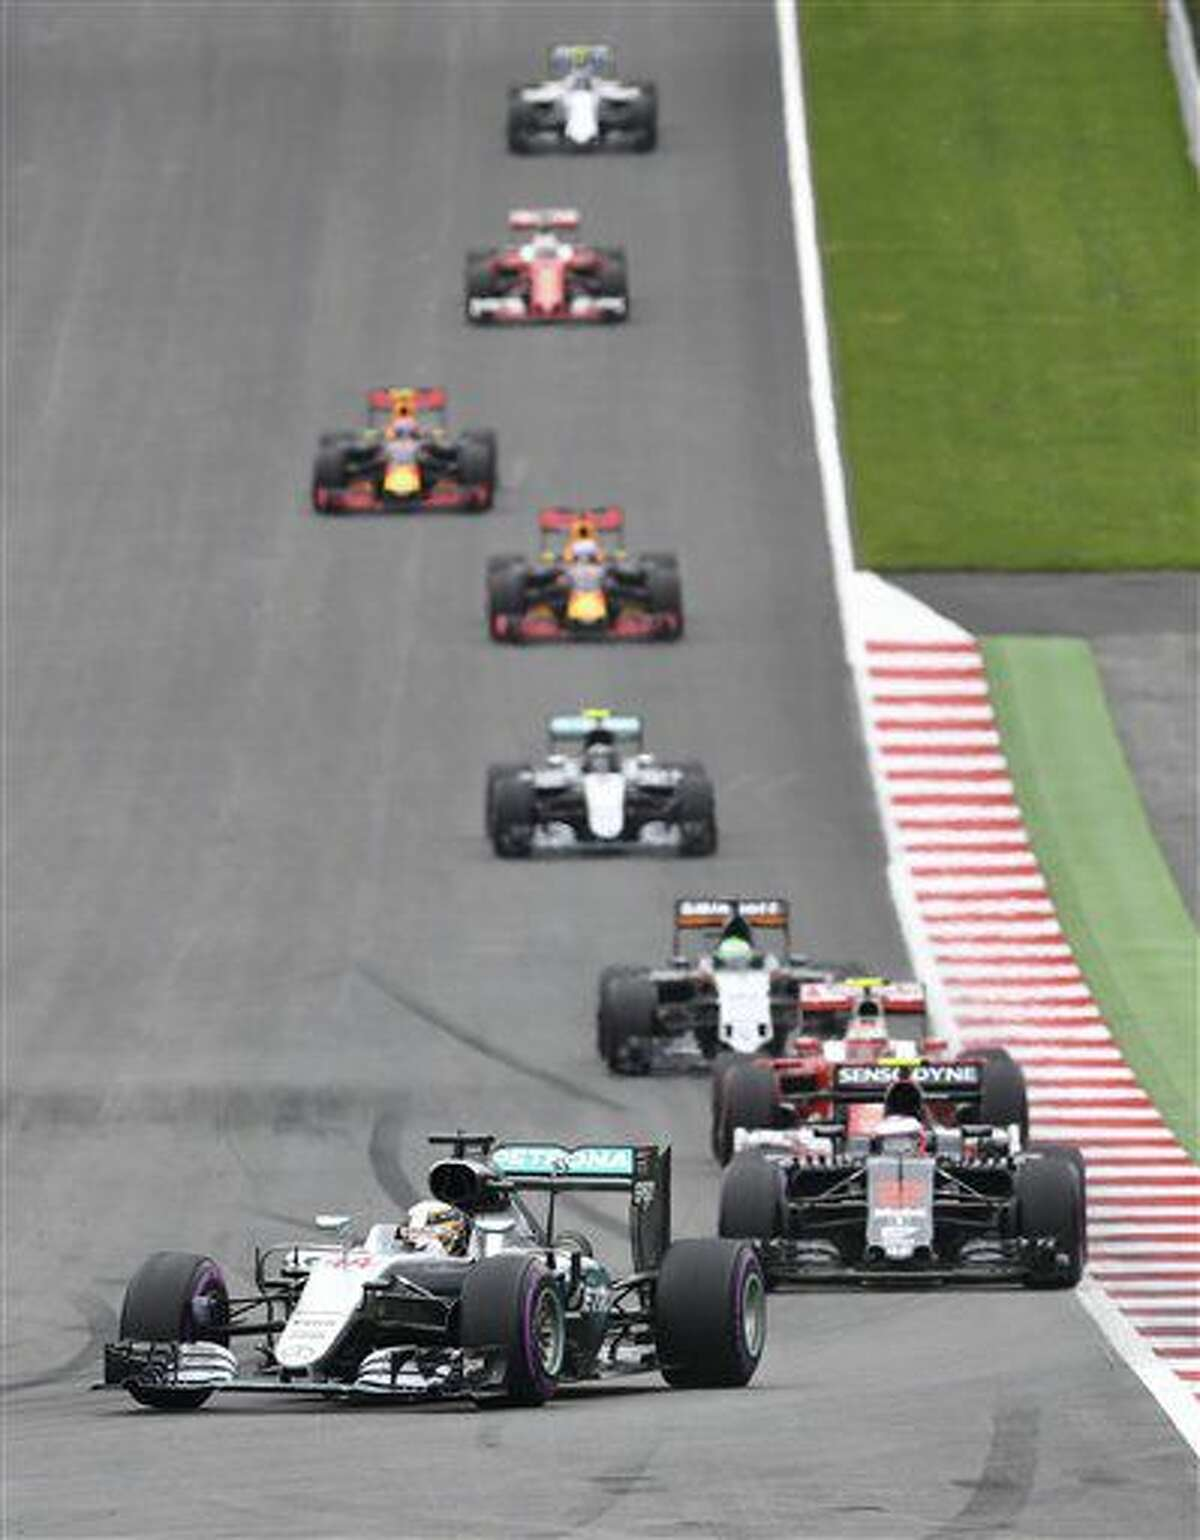 Mercedes driver Lewis Hamilton of Britain leads during the Formula One Grand Prix, at the Red Bull Ring in racetrack, in Spielberg, Austria, Sunday, July. 3, 2016. (AP Photo/Kerstin Joensson)